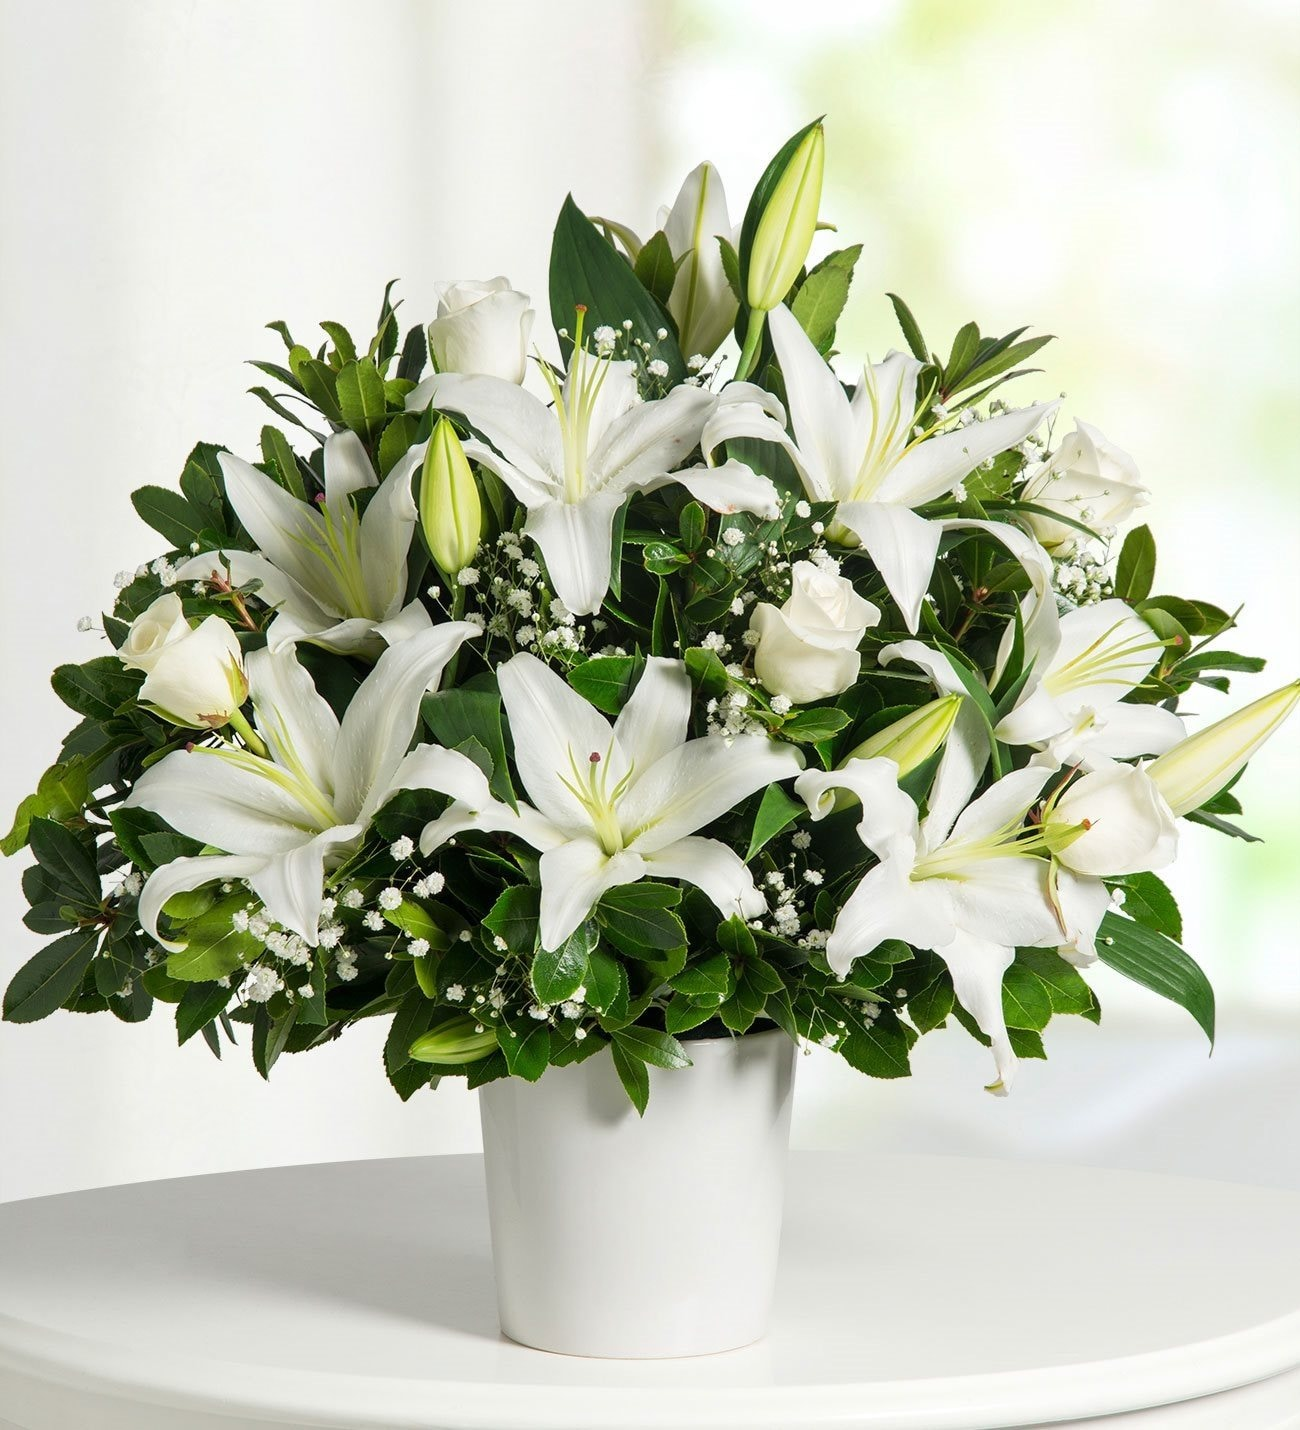 Shop Now For The Bouquet Of Lilies And Roses Peaceful Hug